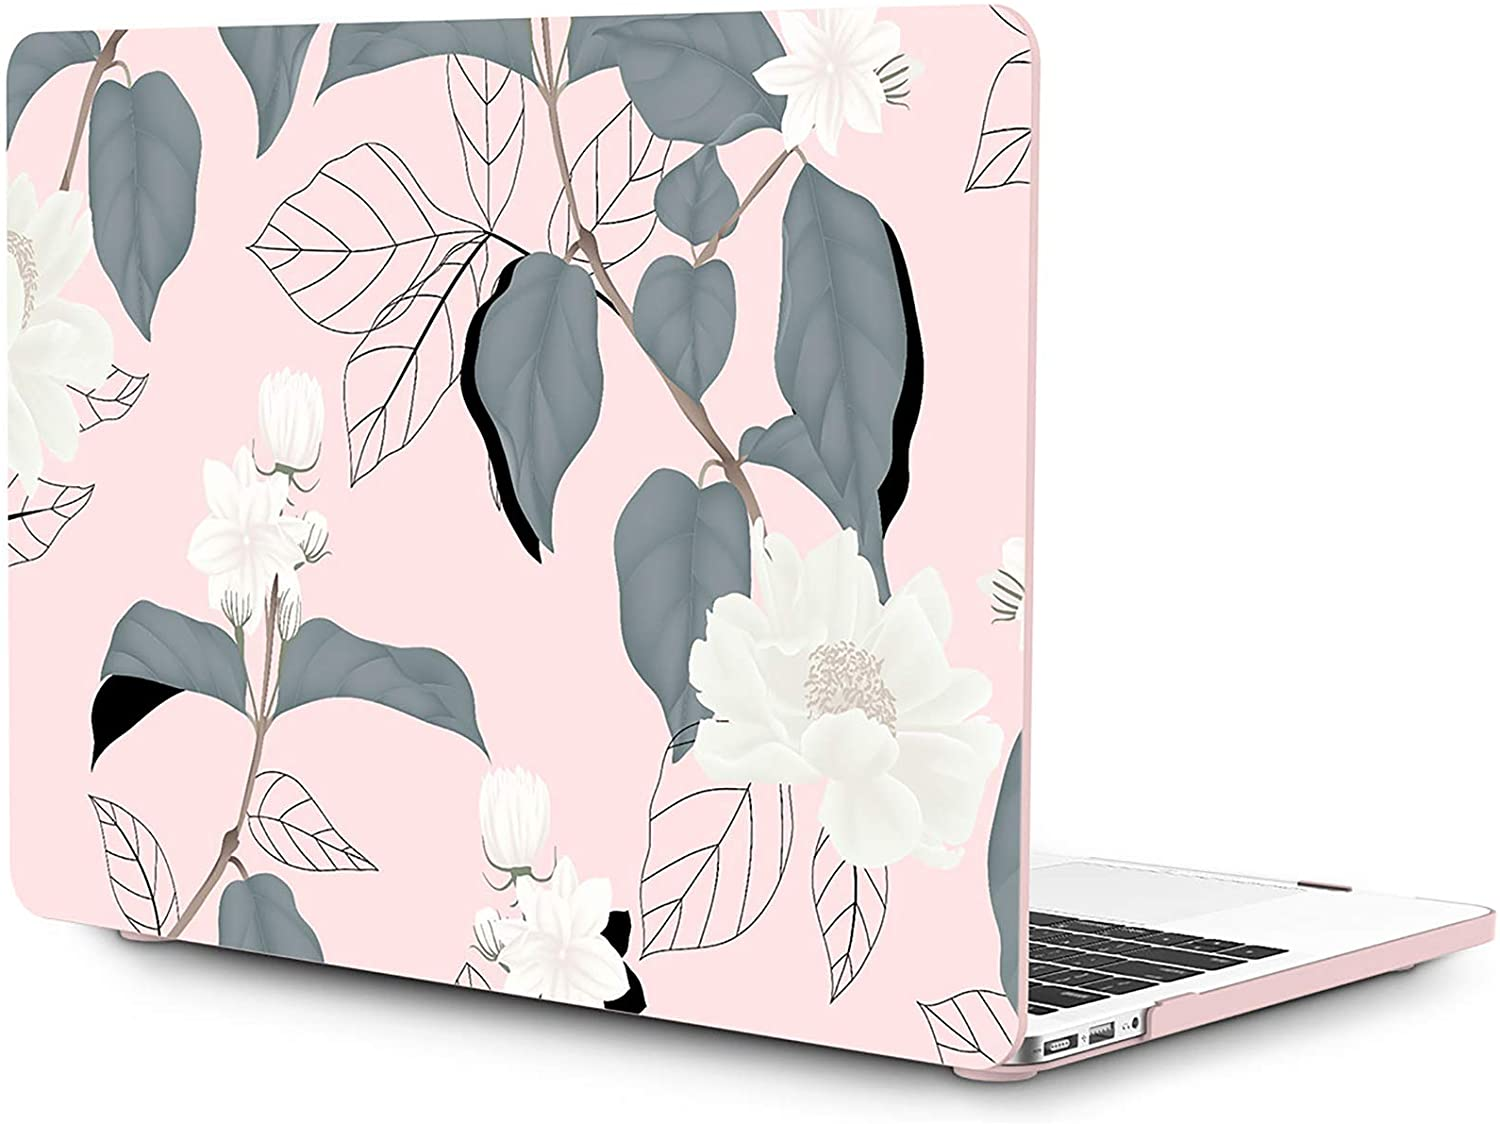 OneGET Macbook Air 13 Inch Case Hard Shell Laptop Case Macbook Air 13 inch Release 2010-2017 A1369 A1466 with Retina Display Computer Case Macbook Air 13 Inch Fashion Macbook Air 13 Case Hibiscus(F11)